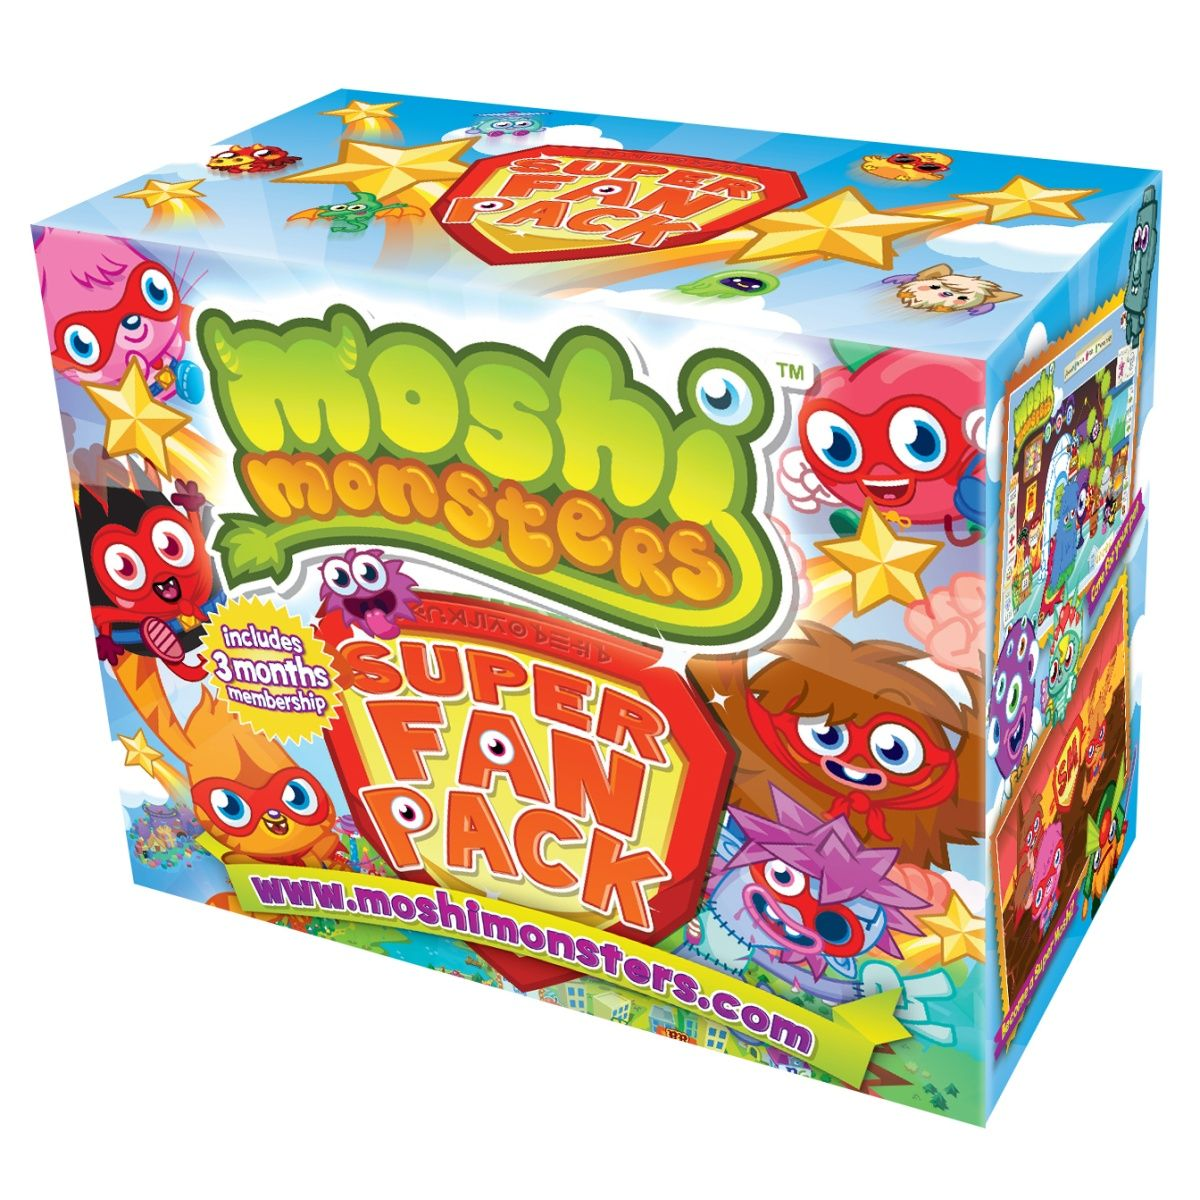 Moshi Monsters Super Fan Pack Top Toy Store in UK